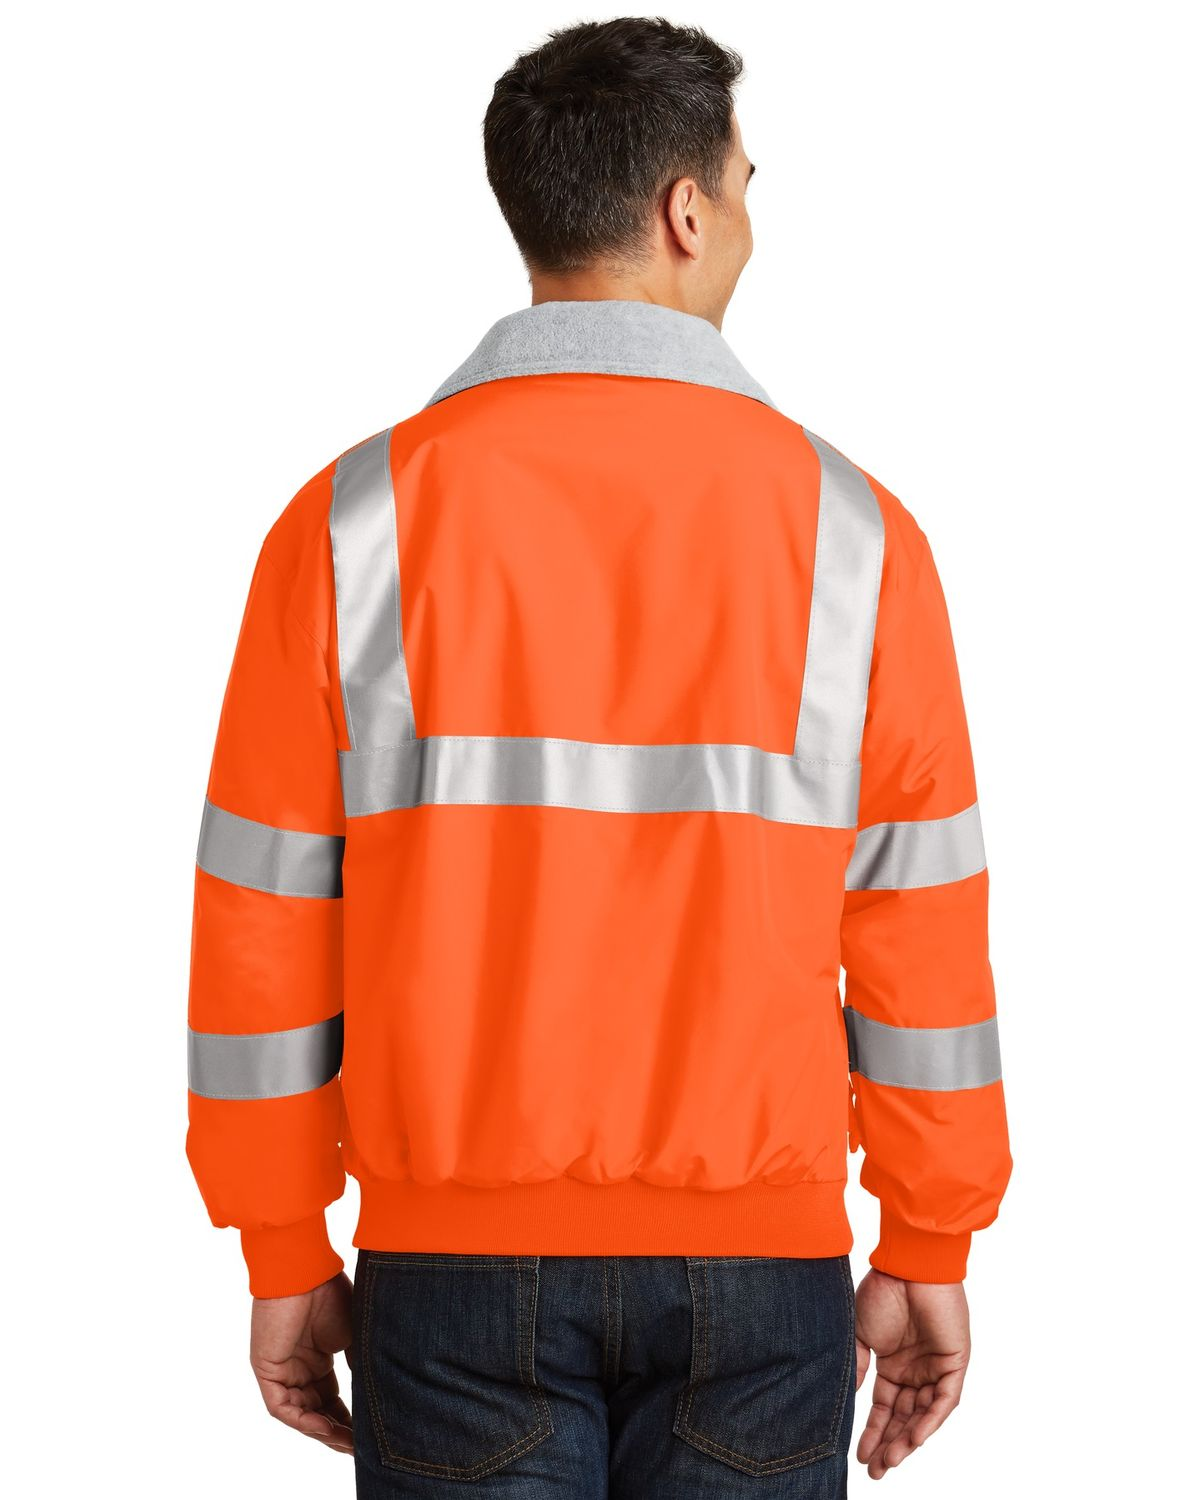 'Port Authority SRJ754 Safety Challenger Jacket with Reflective Taping'